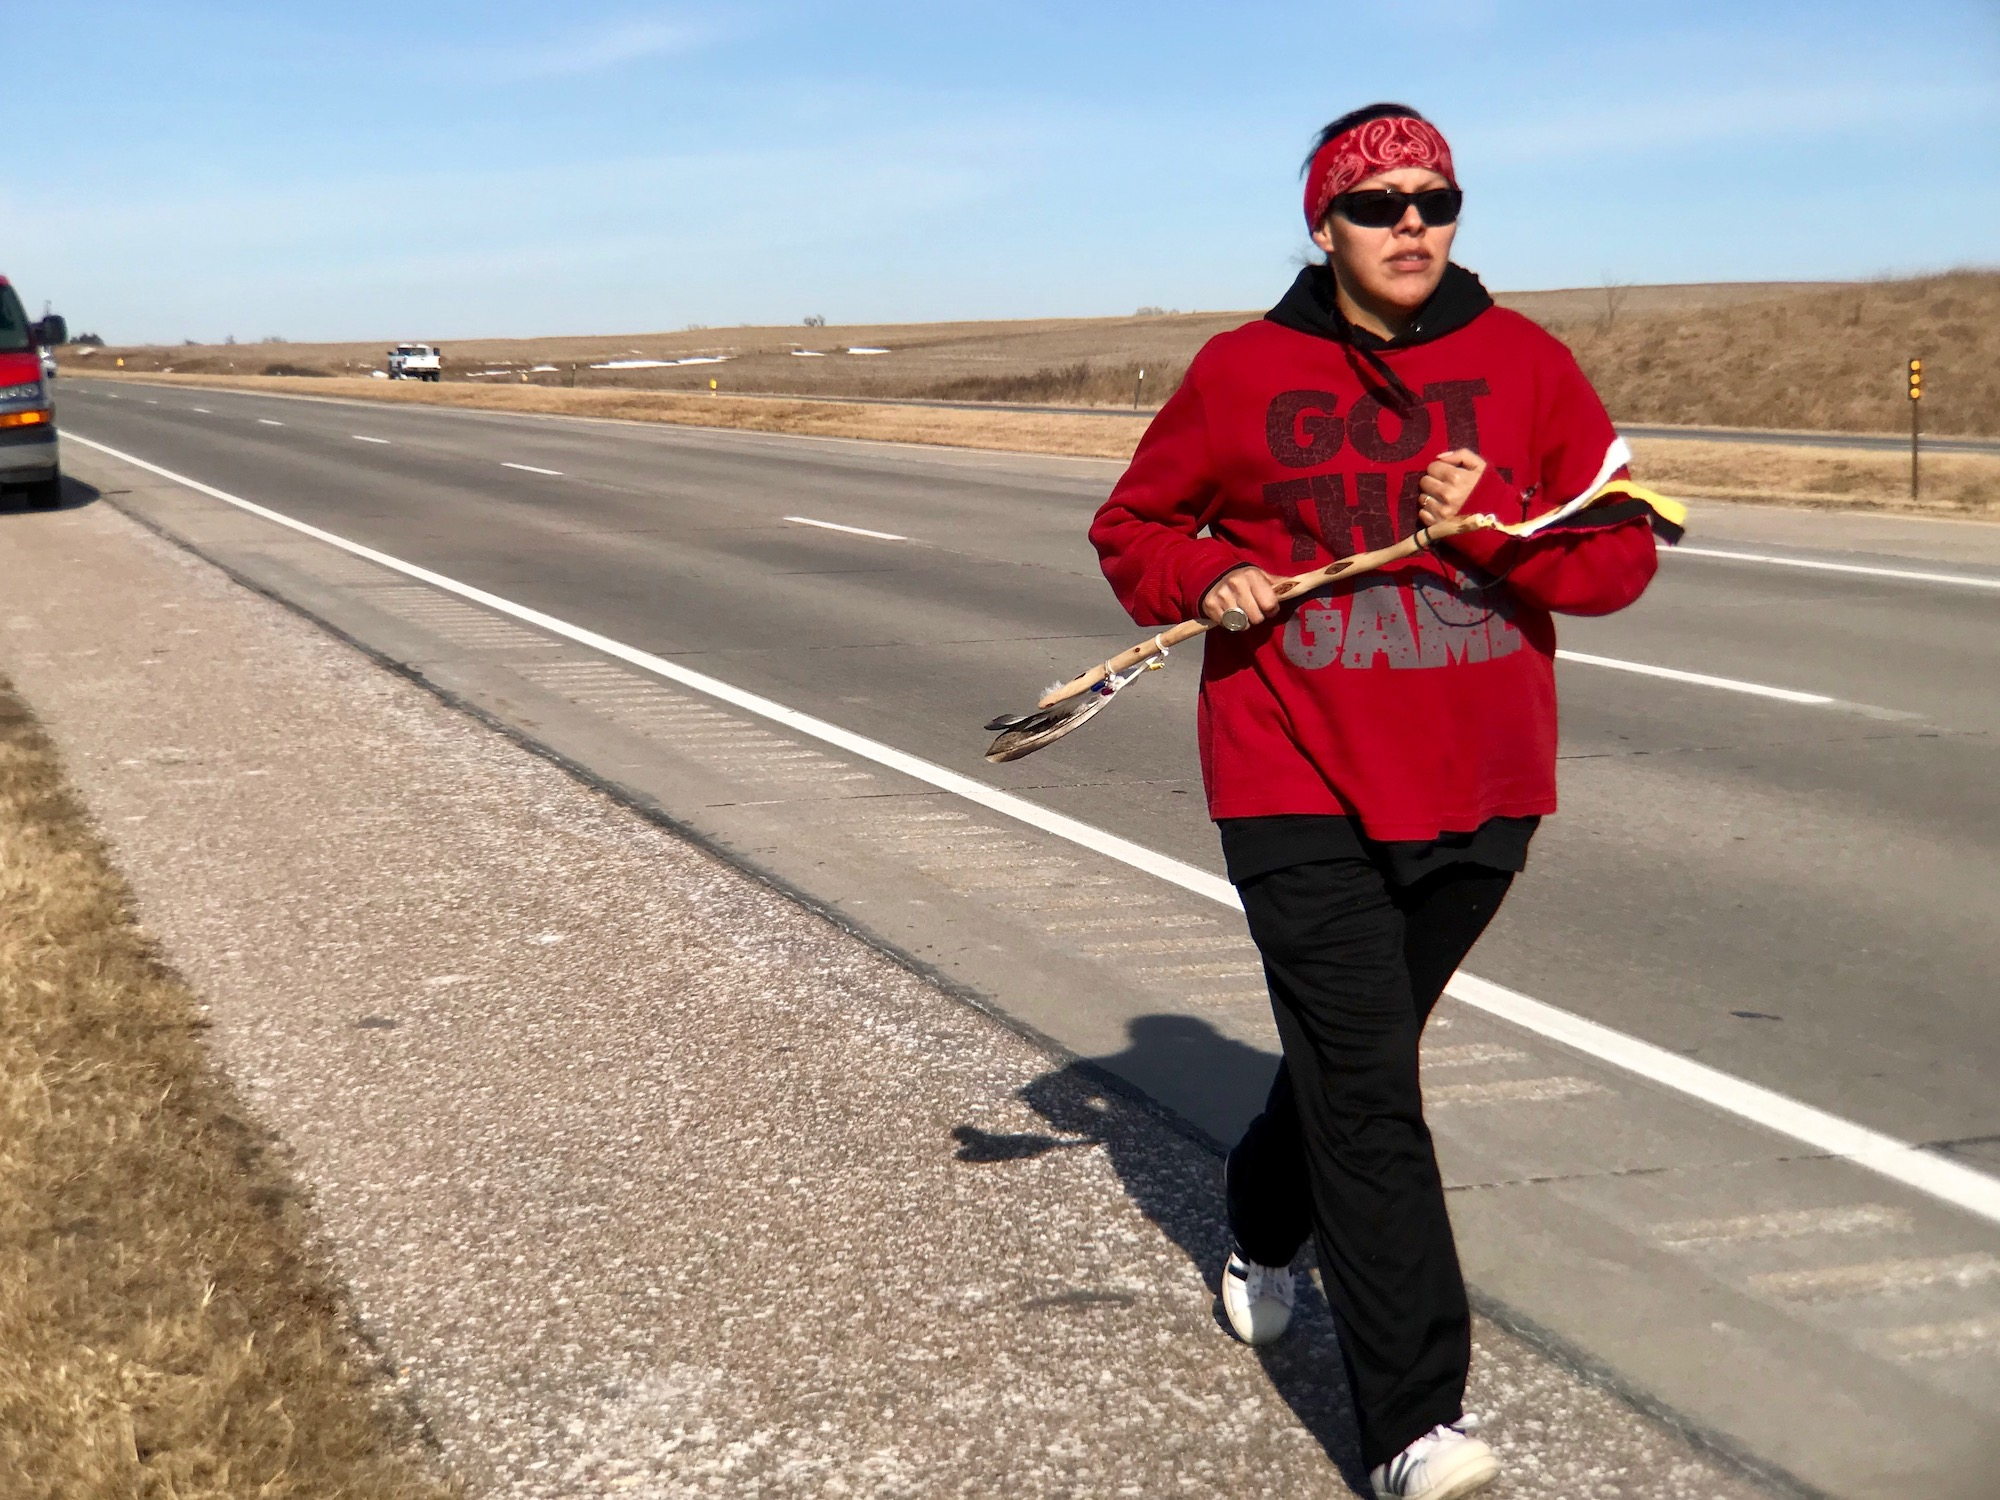 Our lives don't matter': Native women demand action for